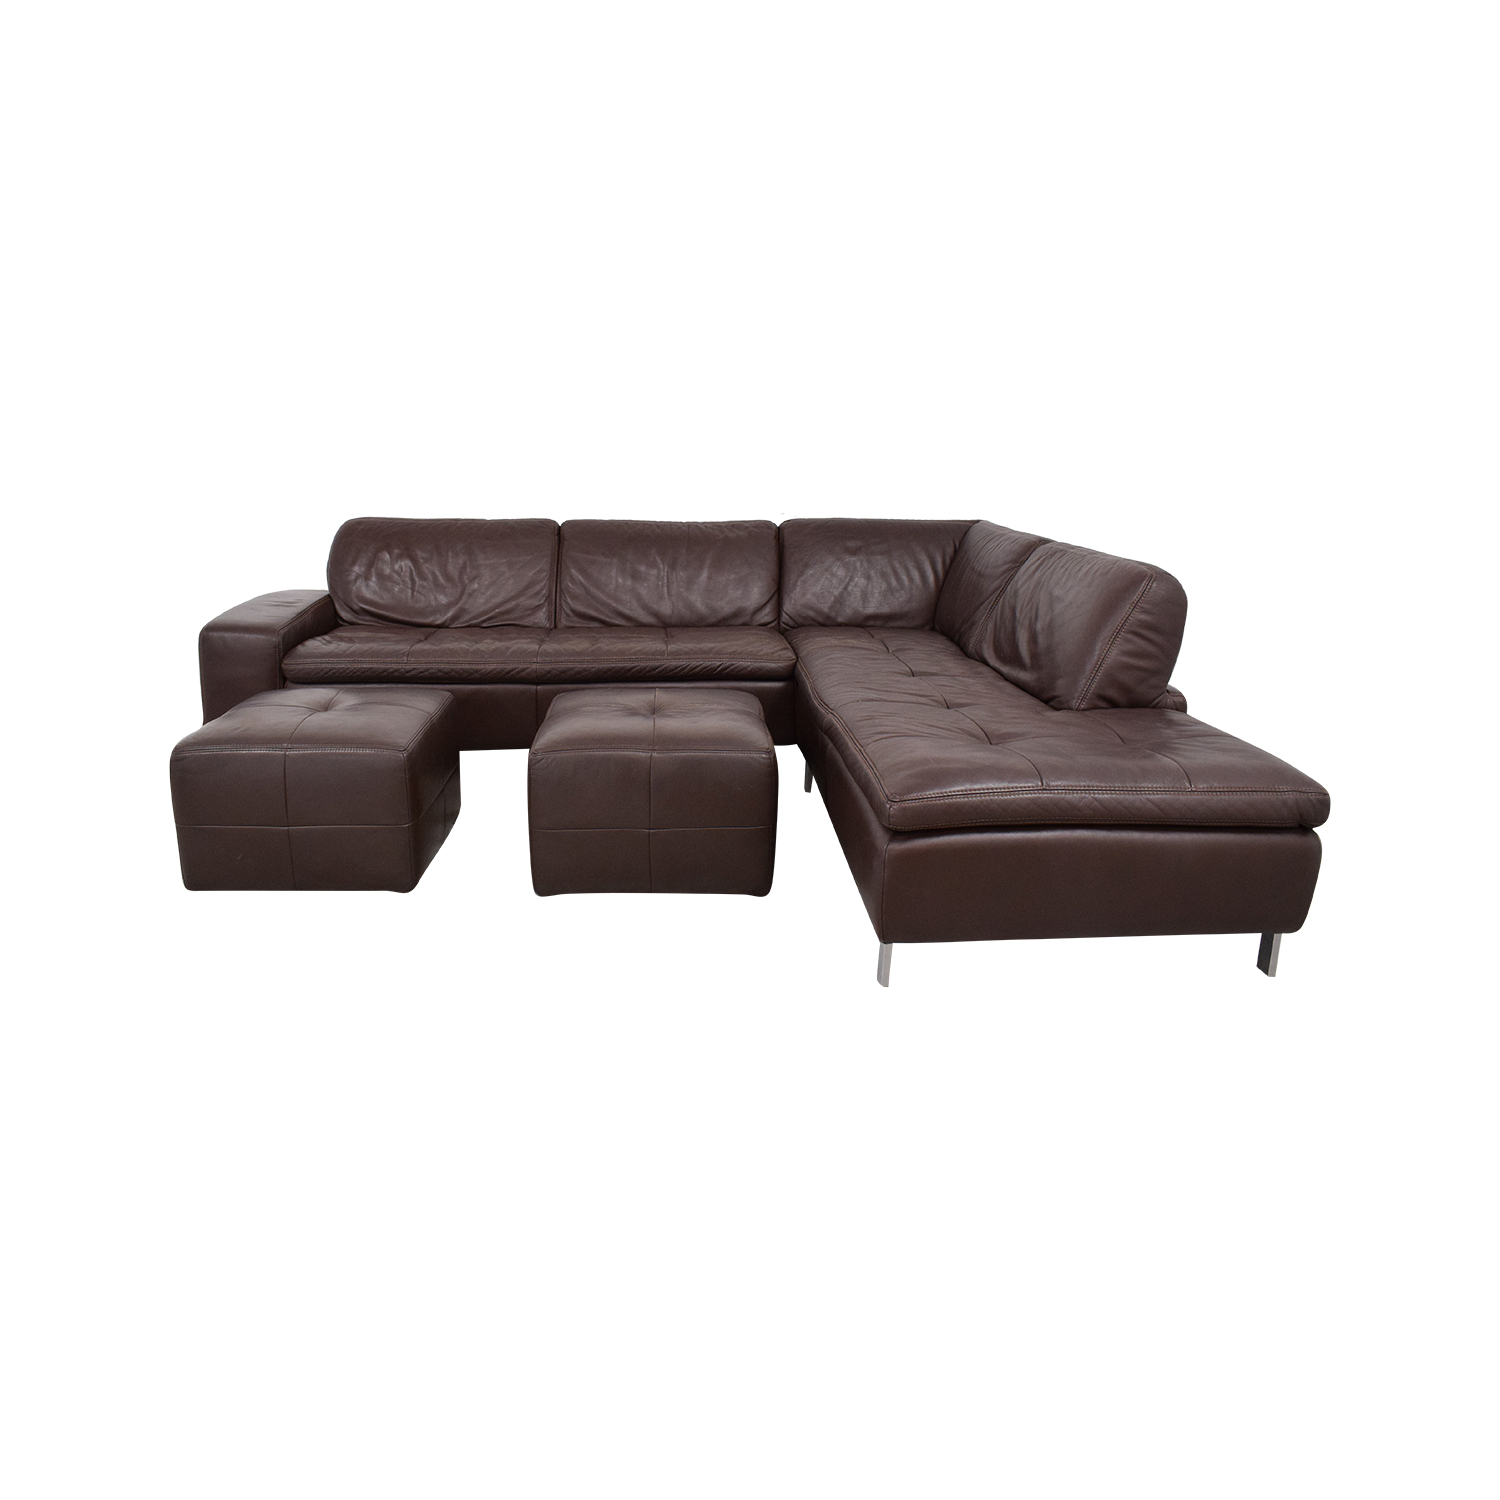 Bloomingdale's Sectional Sofa with Chaise and Ottomans Bloomingdale's